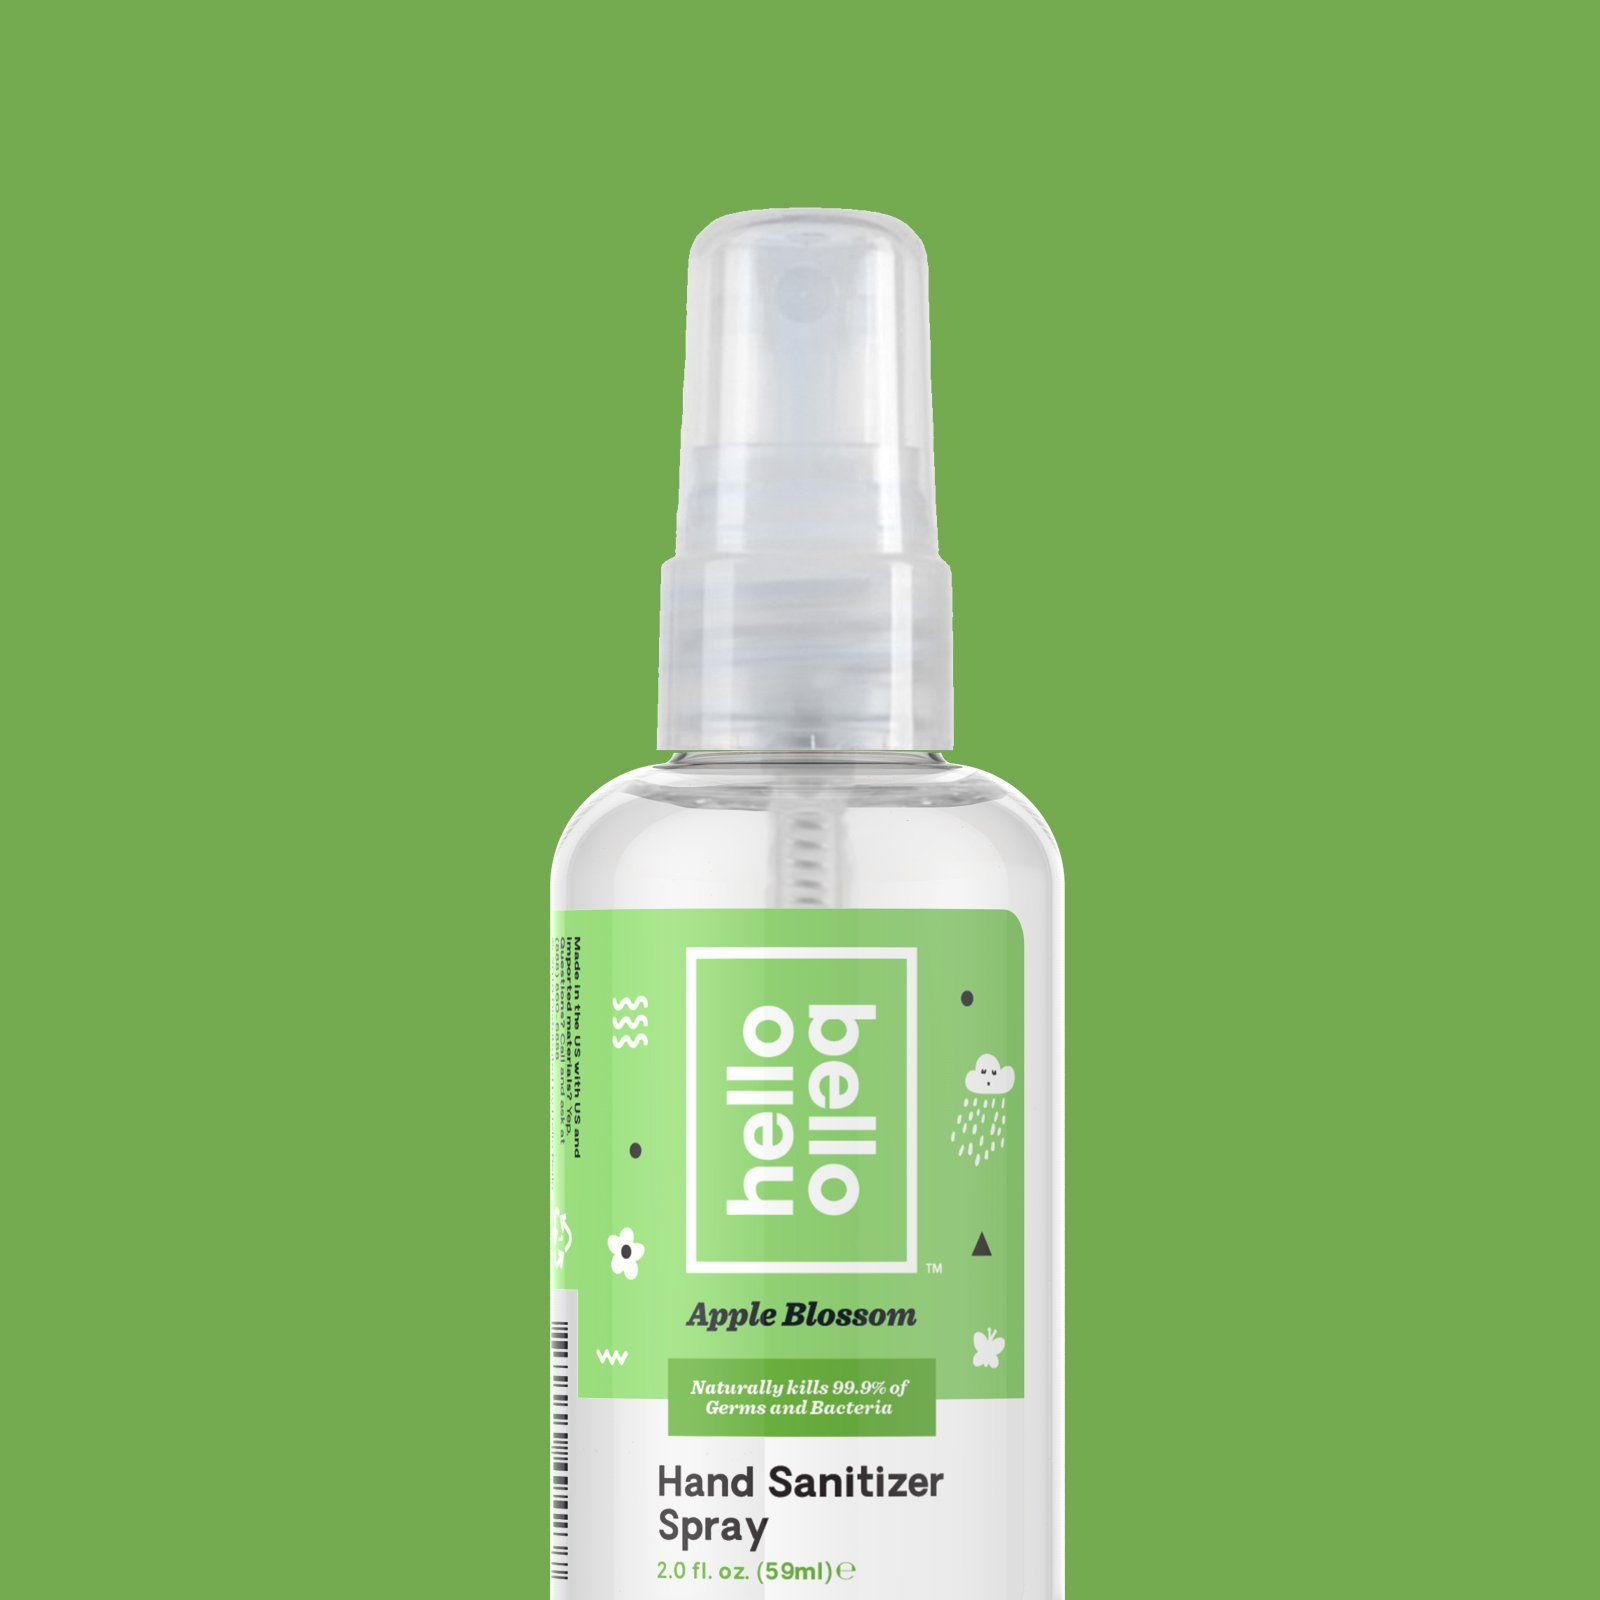 Hand Sanitizer Hand Sanitizer Natural Essential Oils Natural Oils